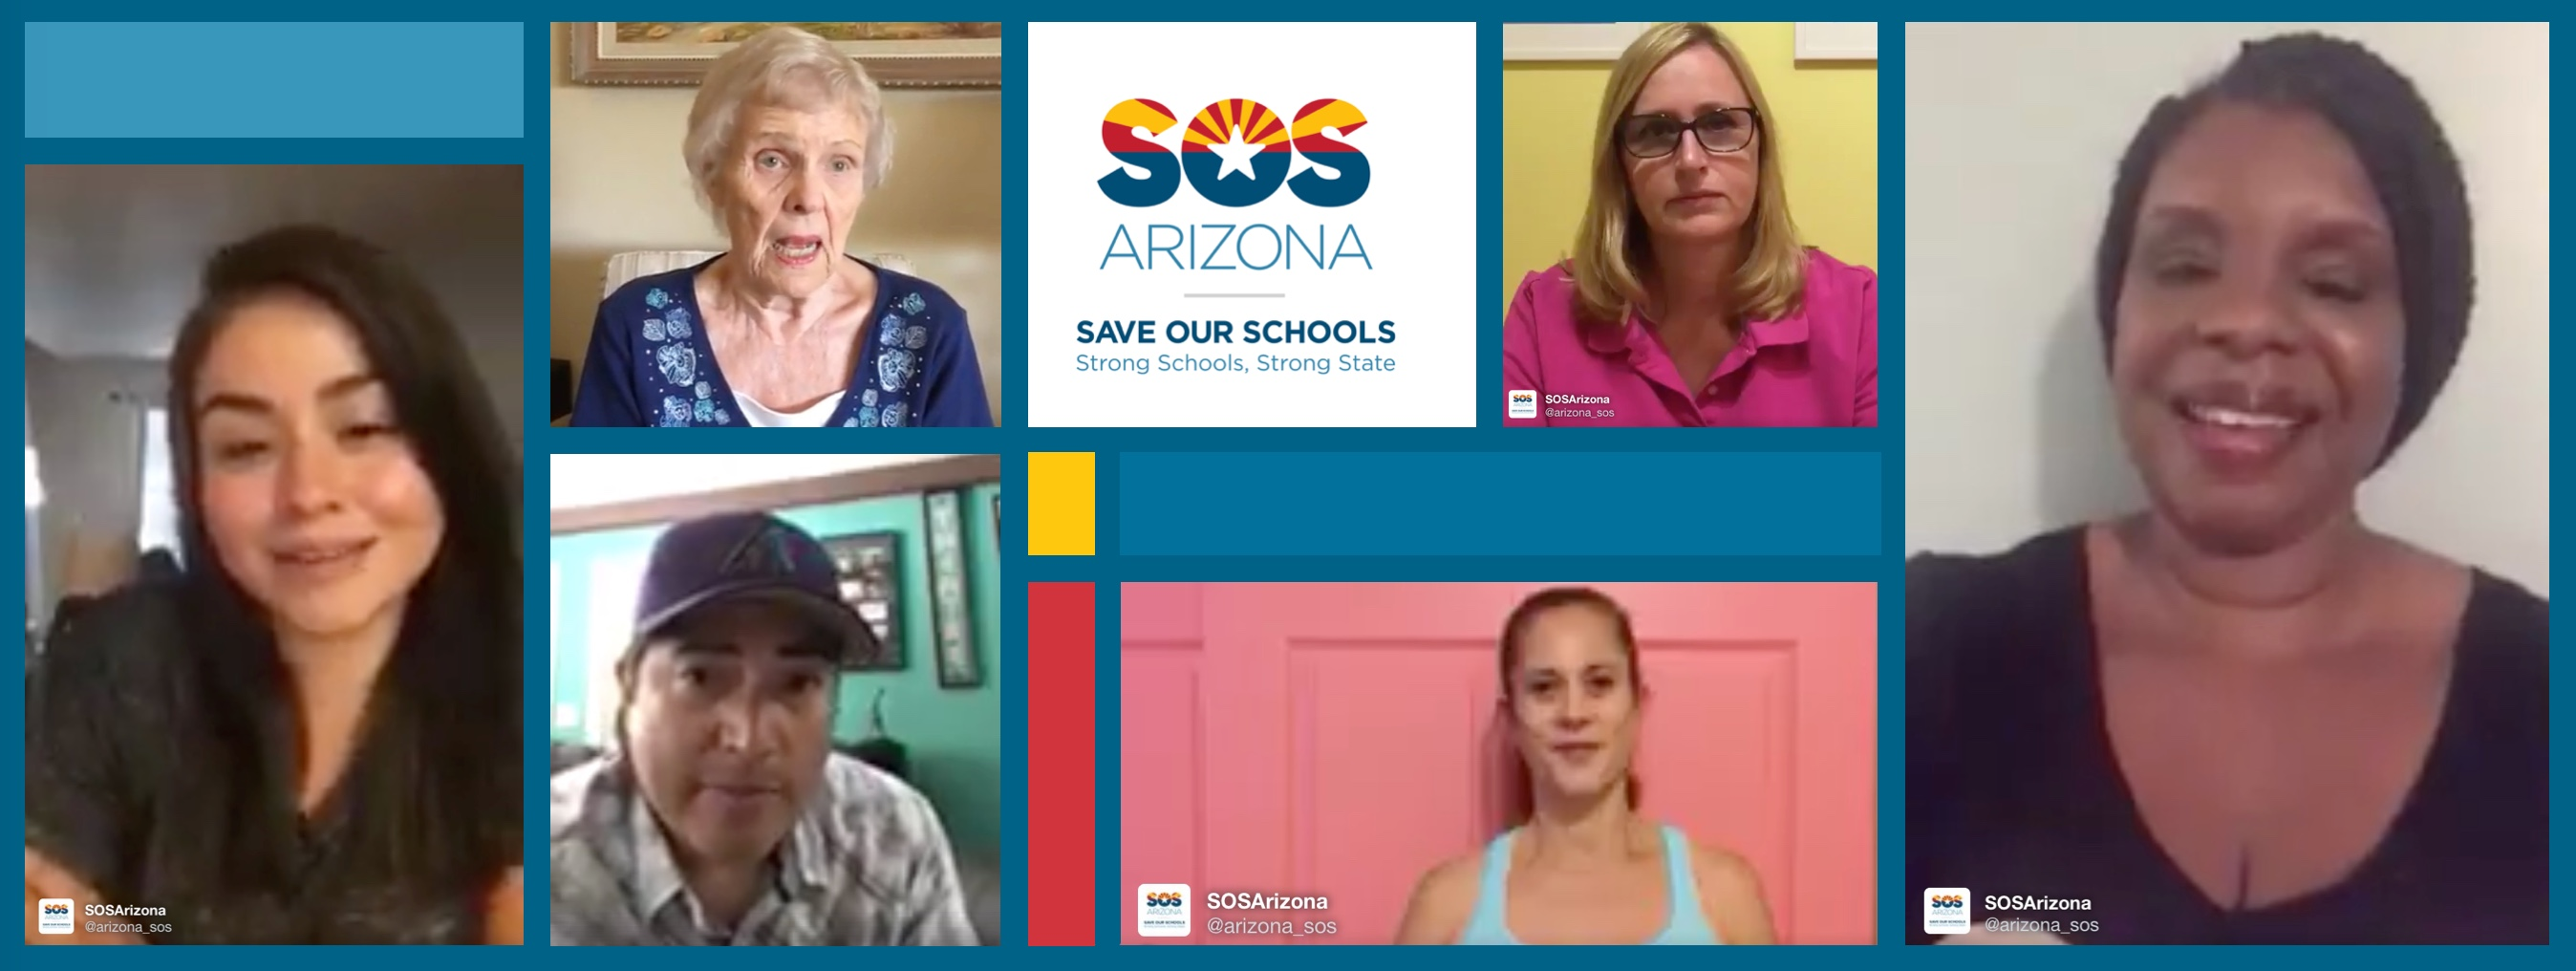 "In Our Volunteers' Words :: <a href=""https://www.washingtonpost.com/news/answer-sheet/wp/2017/08/10/arizona-school-voucher-expansion-put-on-hold-as-opponents-challenge-new-law/?utm_term=.3beed6b19dc2"" target=""_blank"" rel=""noopener noreferrer""><h2></h2> 1"